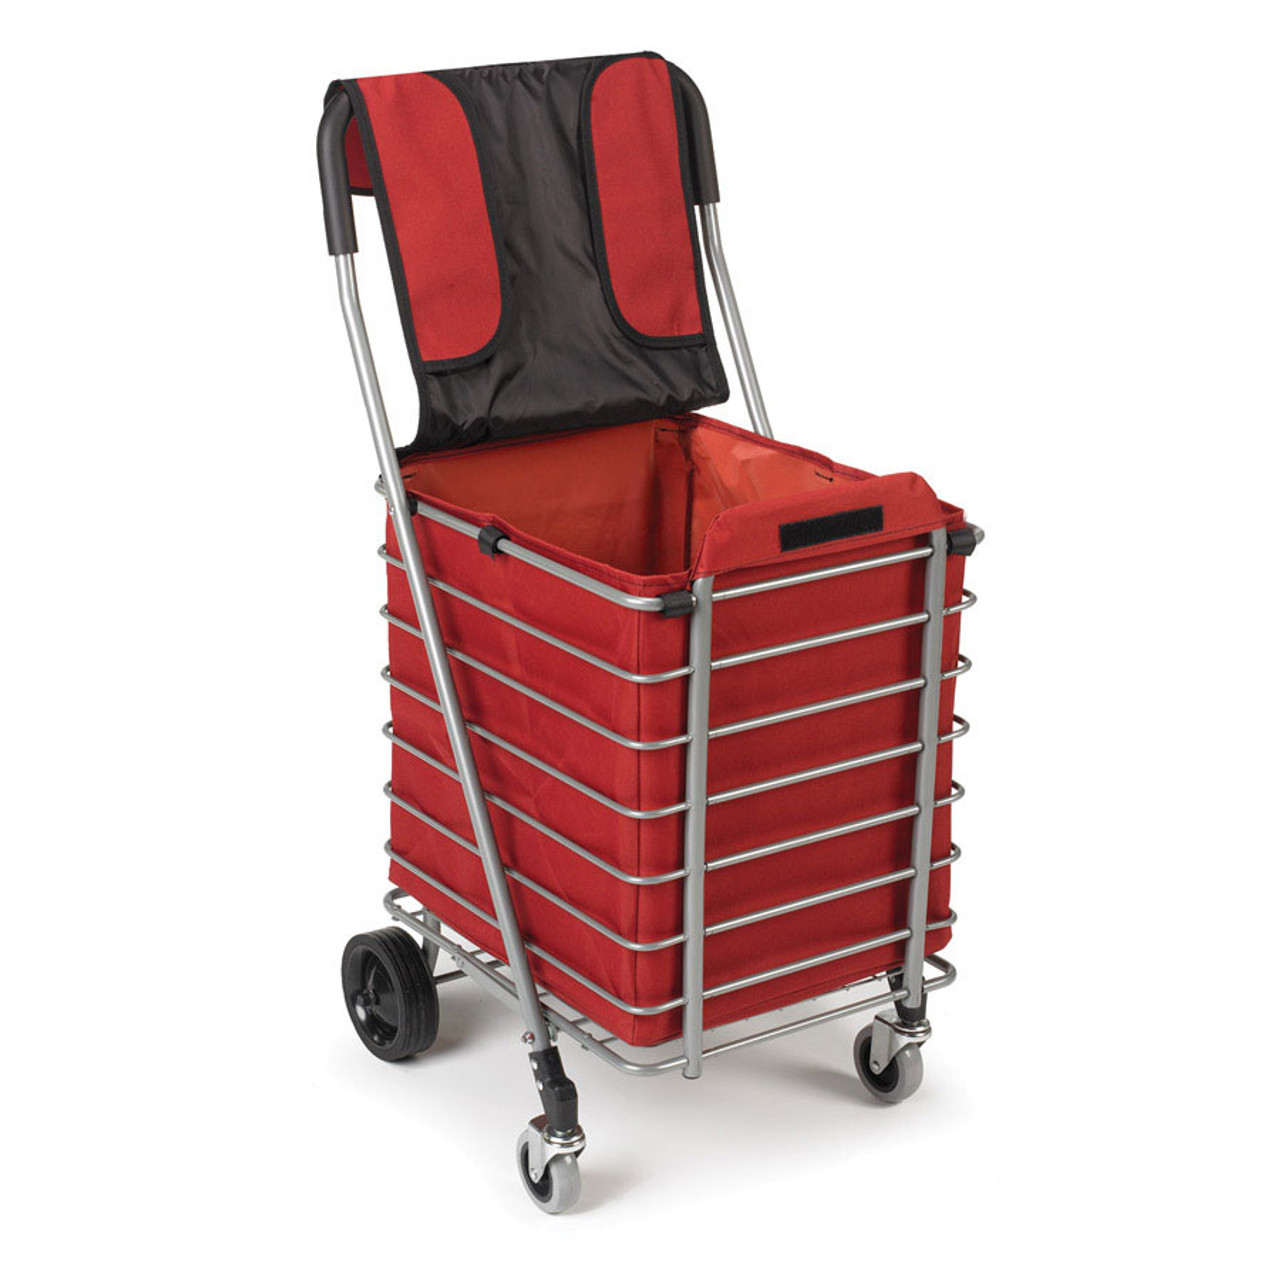 Lightweight Aluminum Cart --Super light Shopping Cart with All-Weather Bag